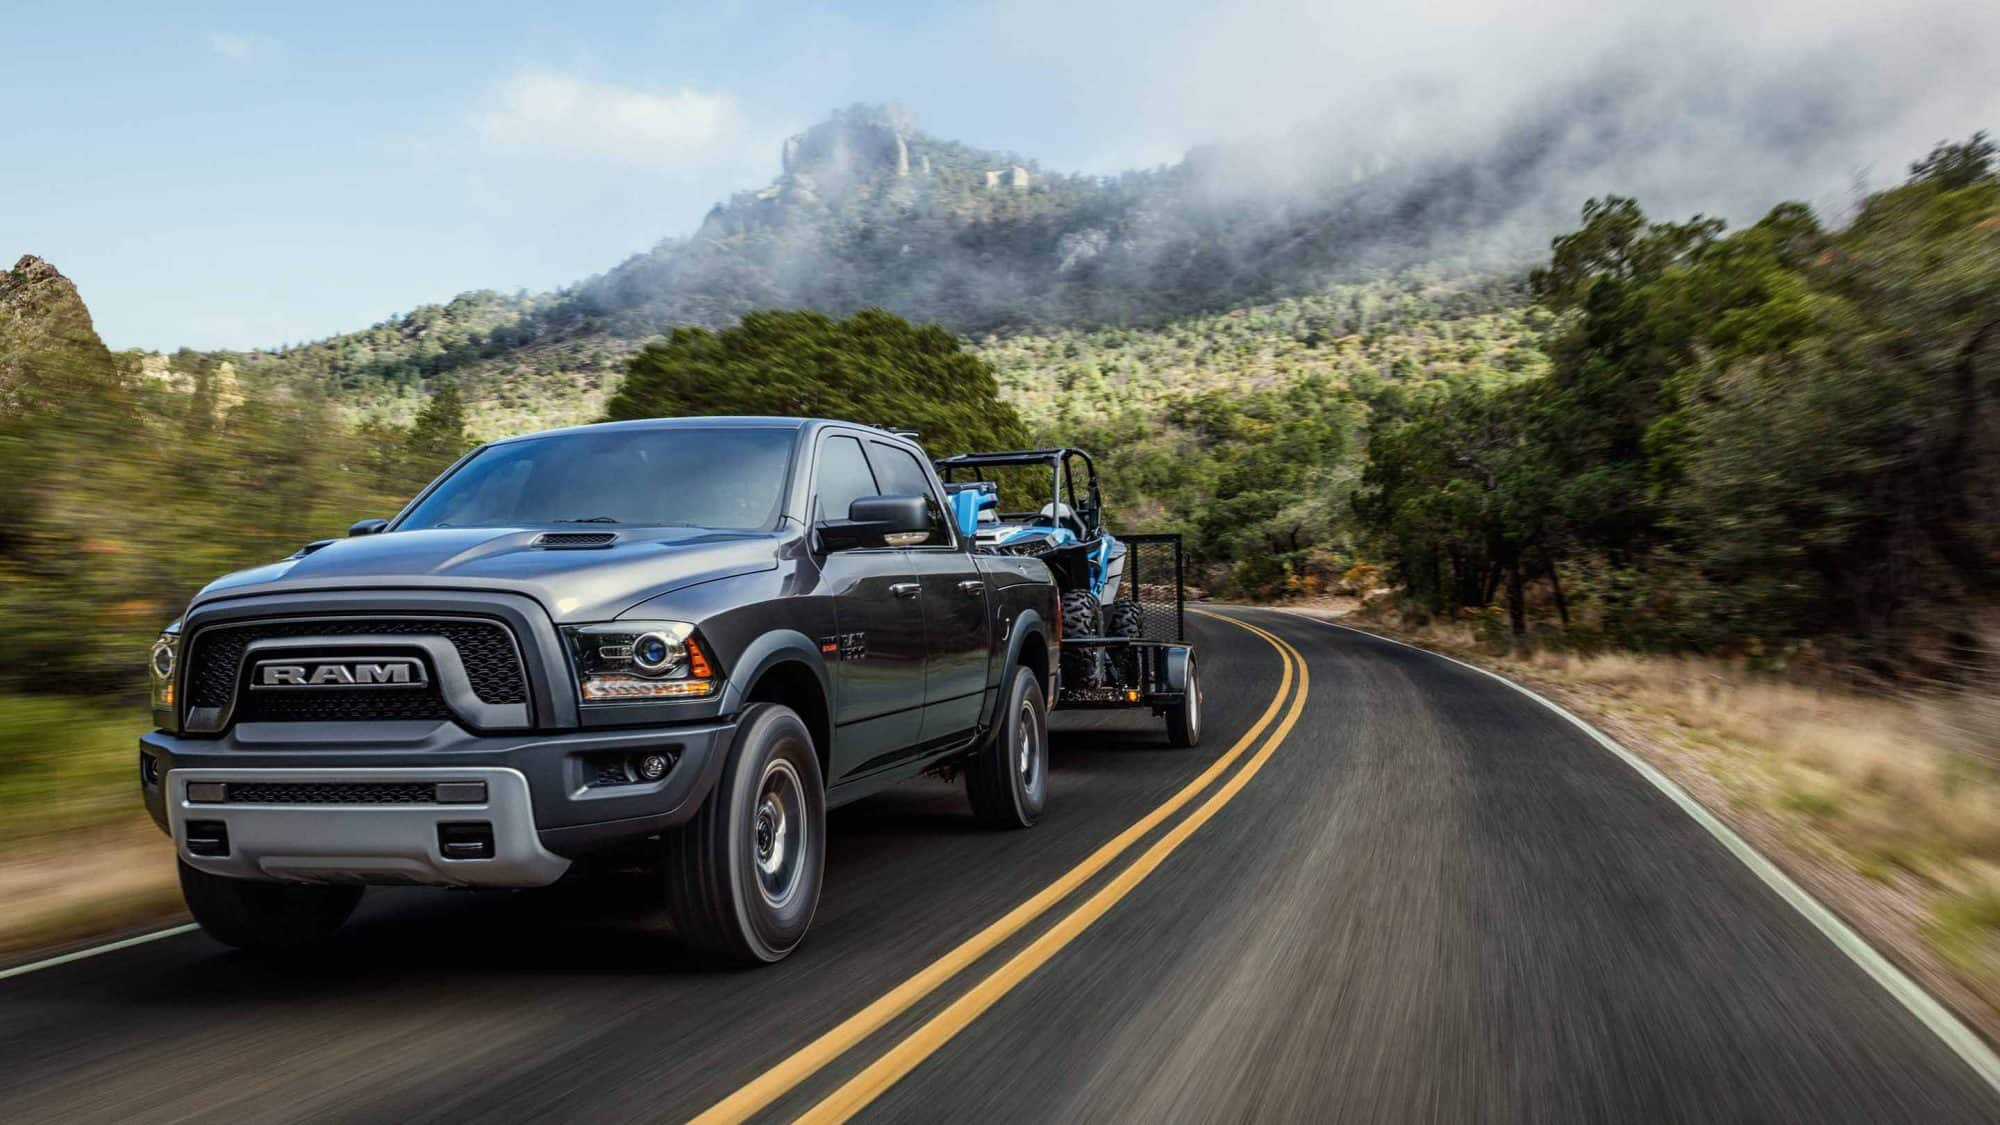 new 2019 ram 1500 for sale near washington dc waldorf md lease or buy a new 2019 ram 1500. Black Bedroom Furniture Sets. Home Design Ideas